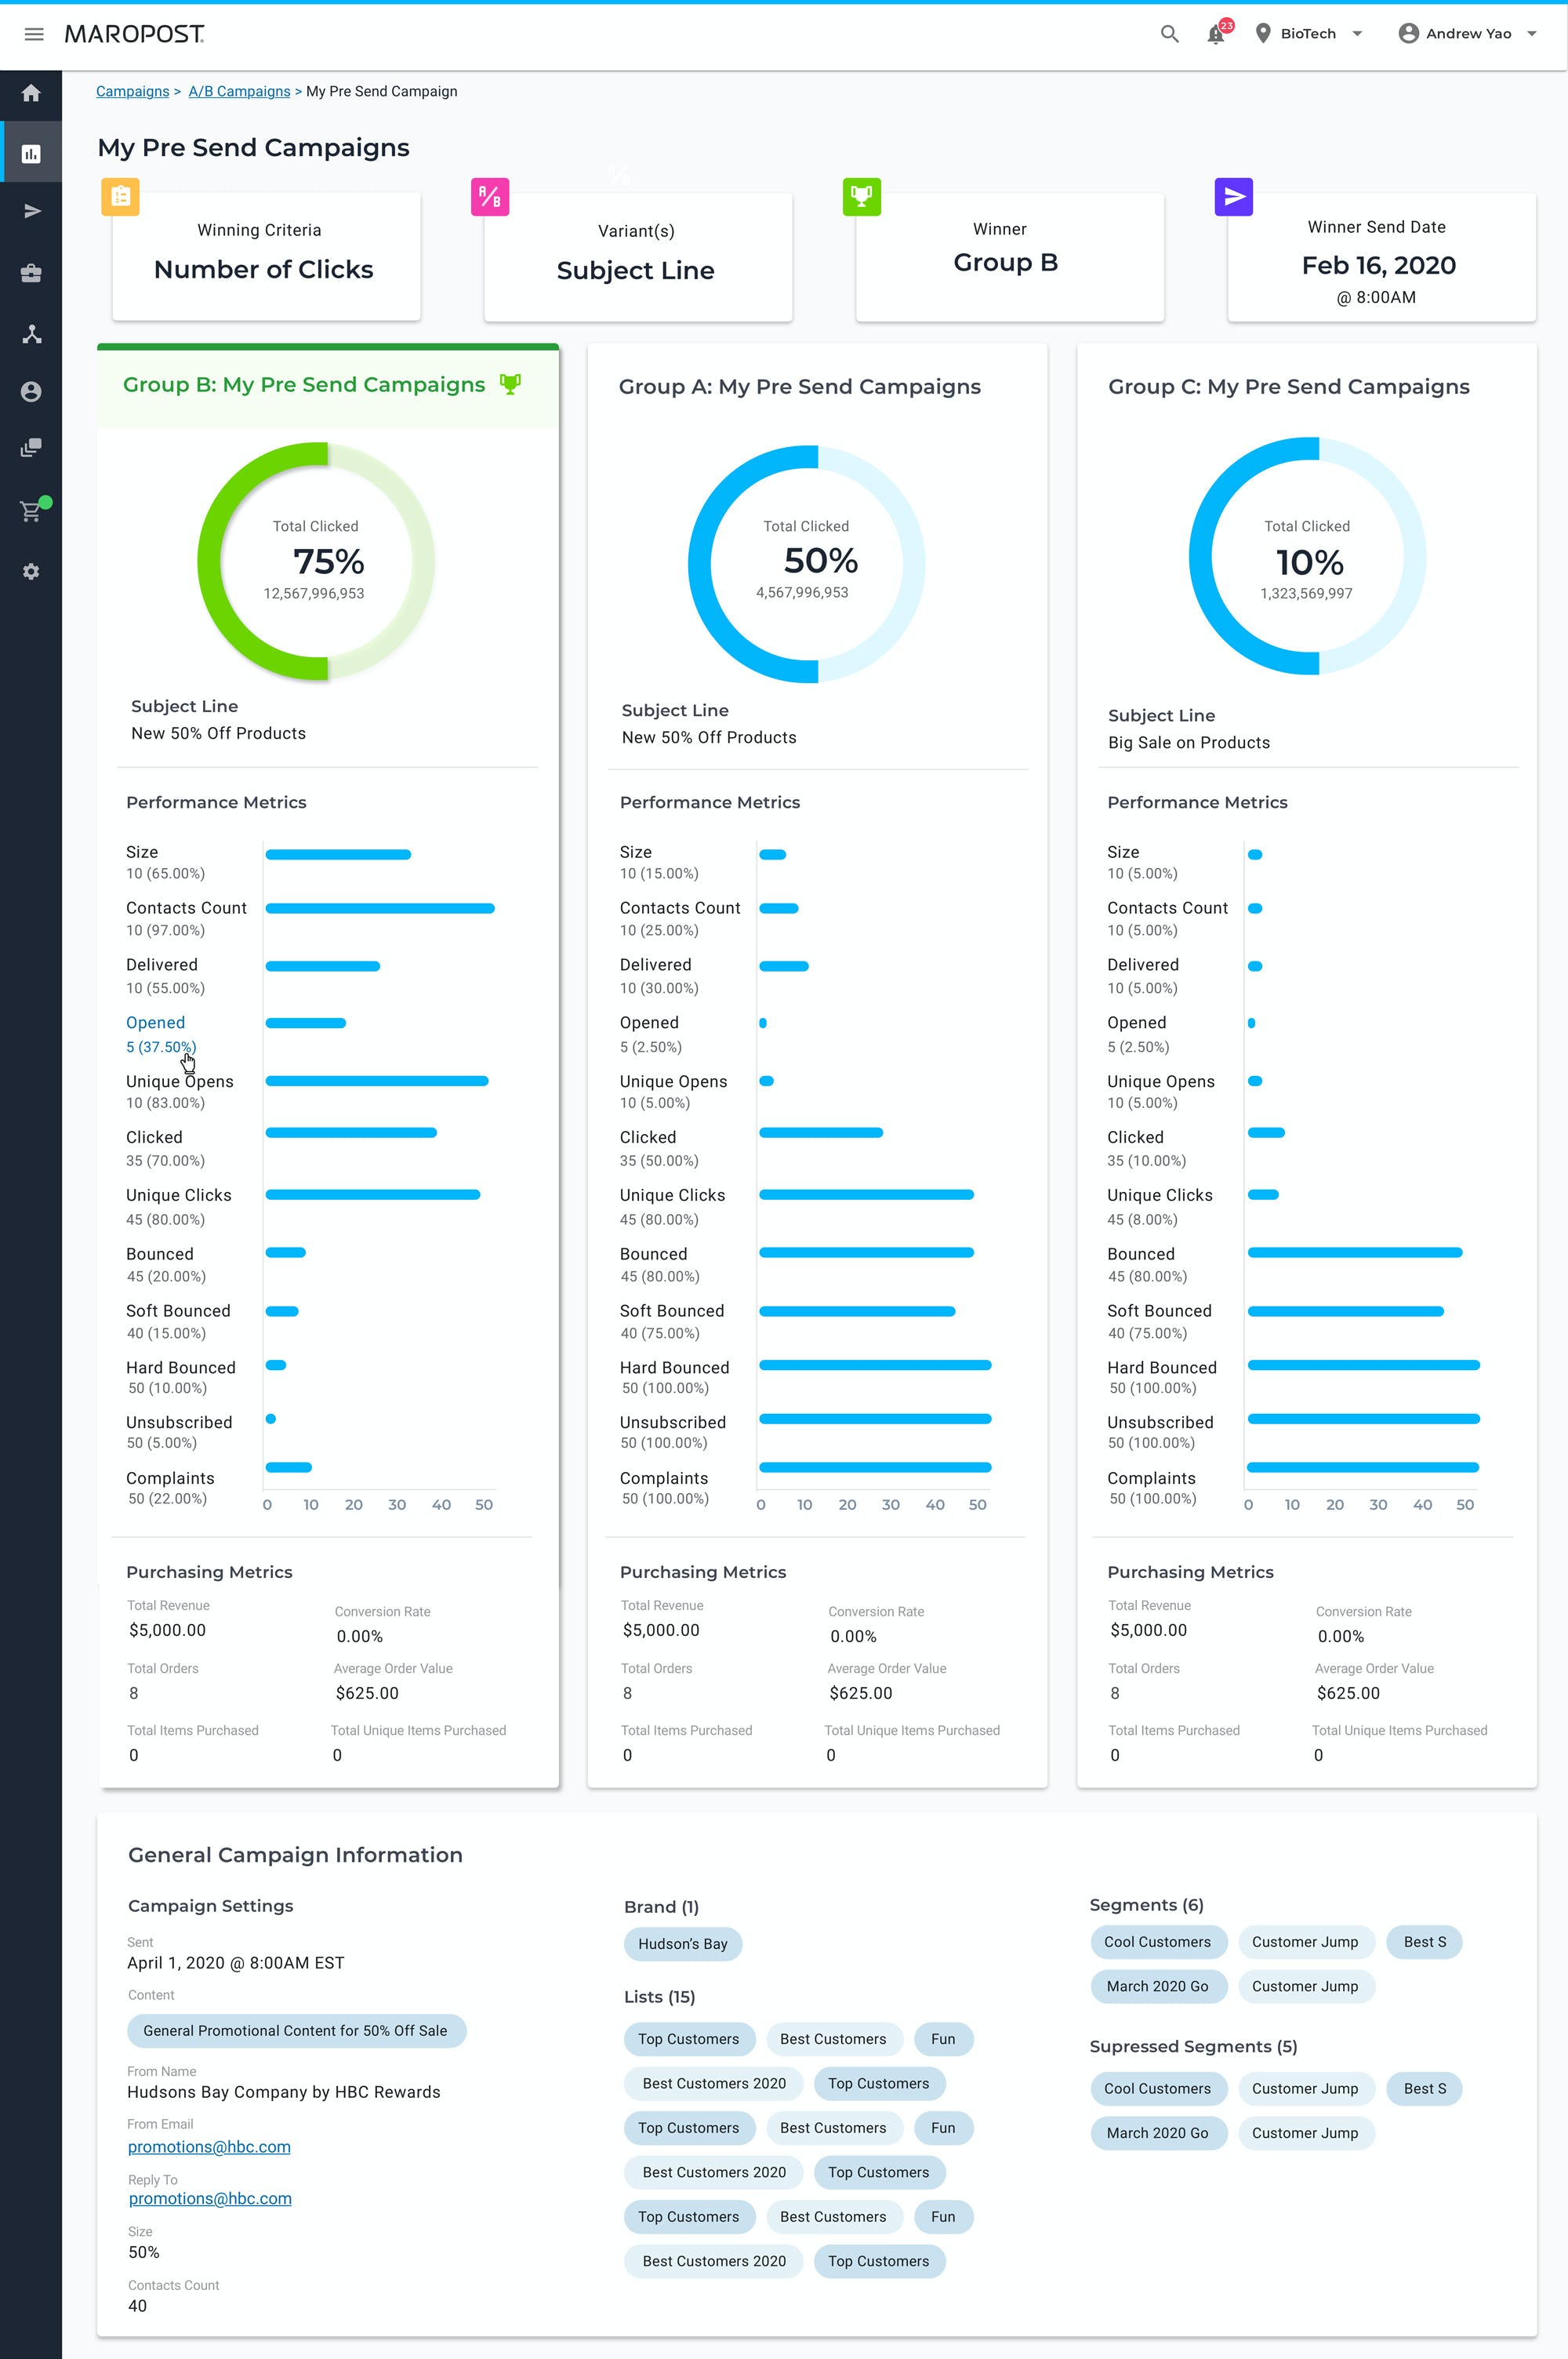 Maropost Software - A/B Campaign Test Report